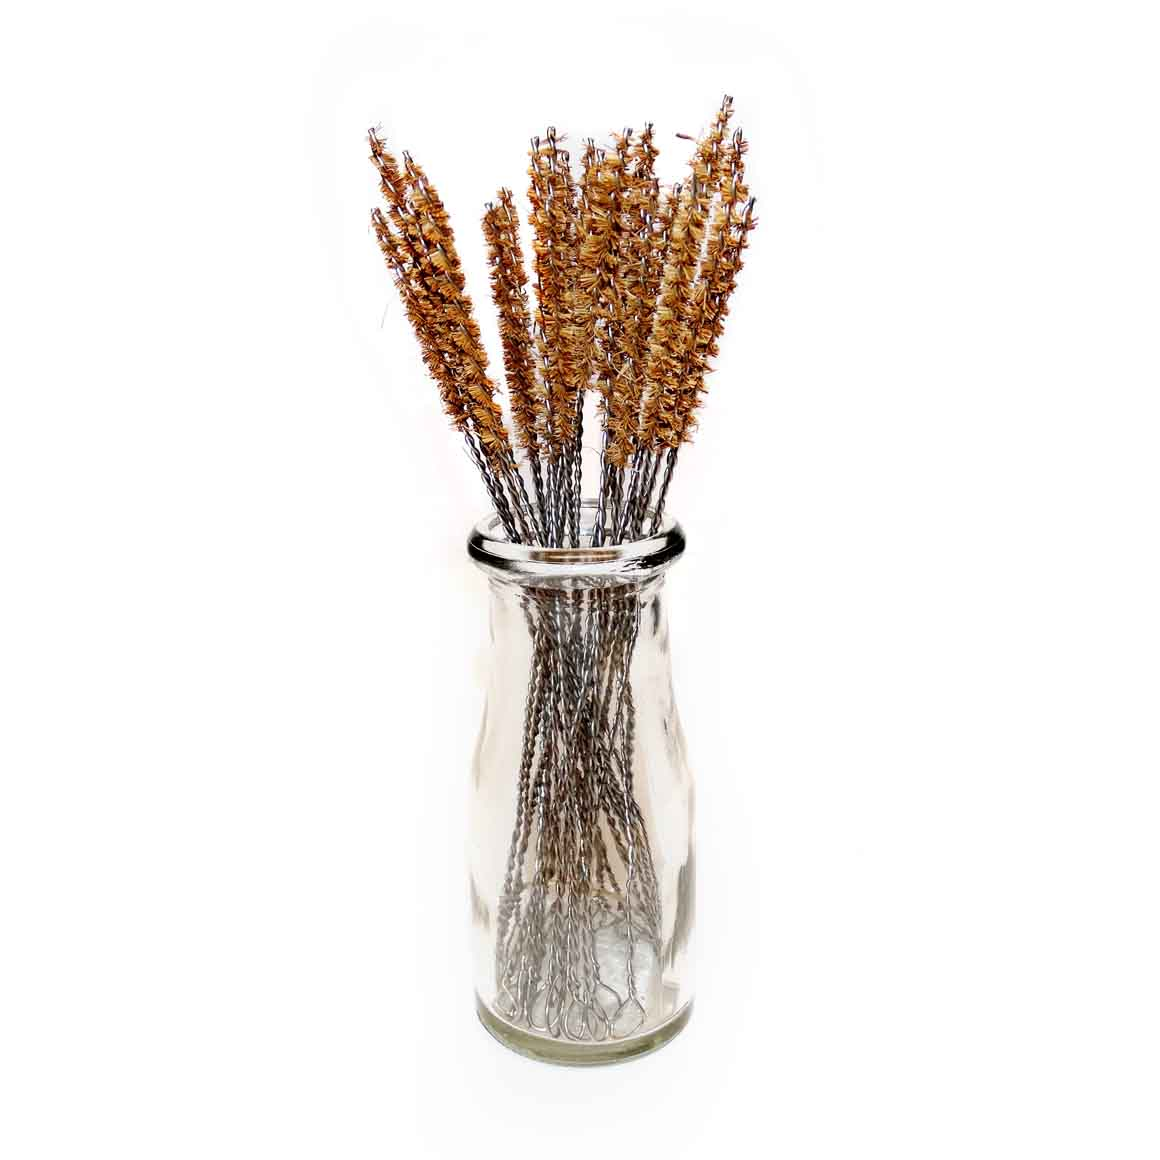 Stainless Steel Straw Cleaning Brush | Trada Marketplace